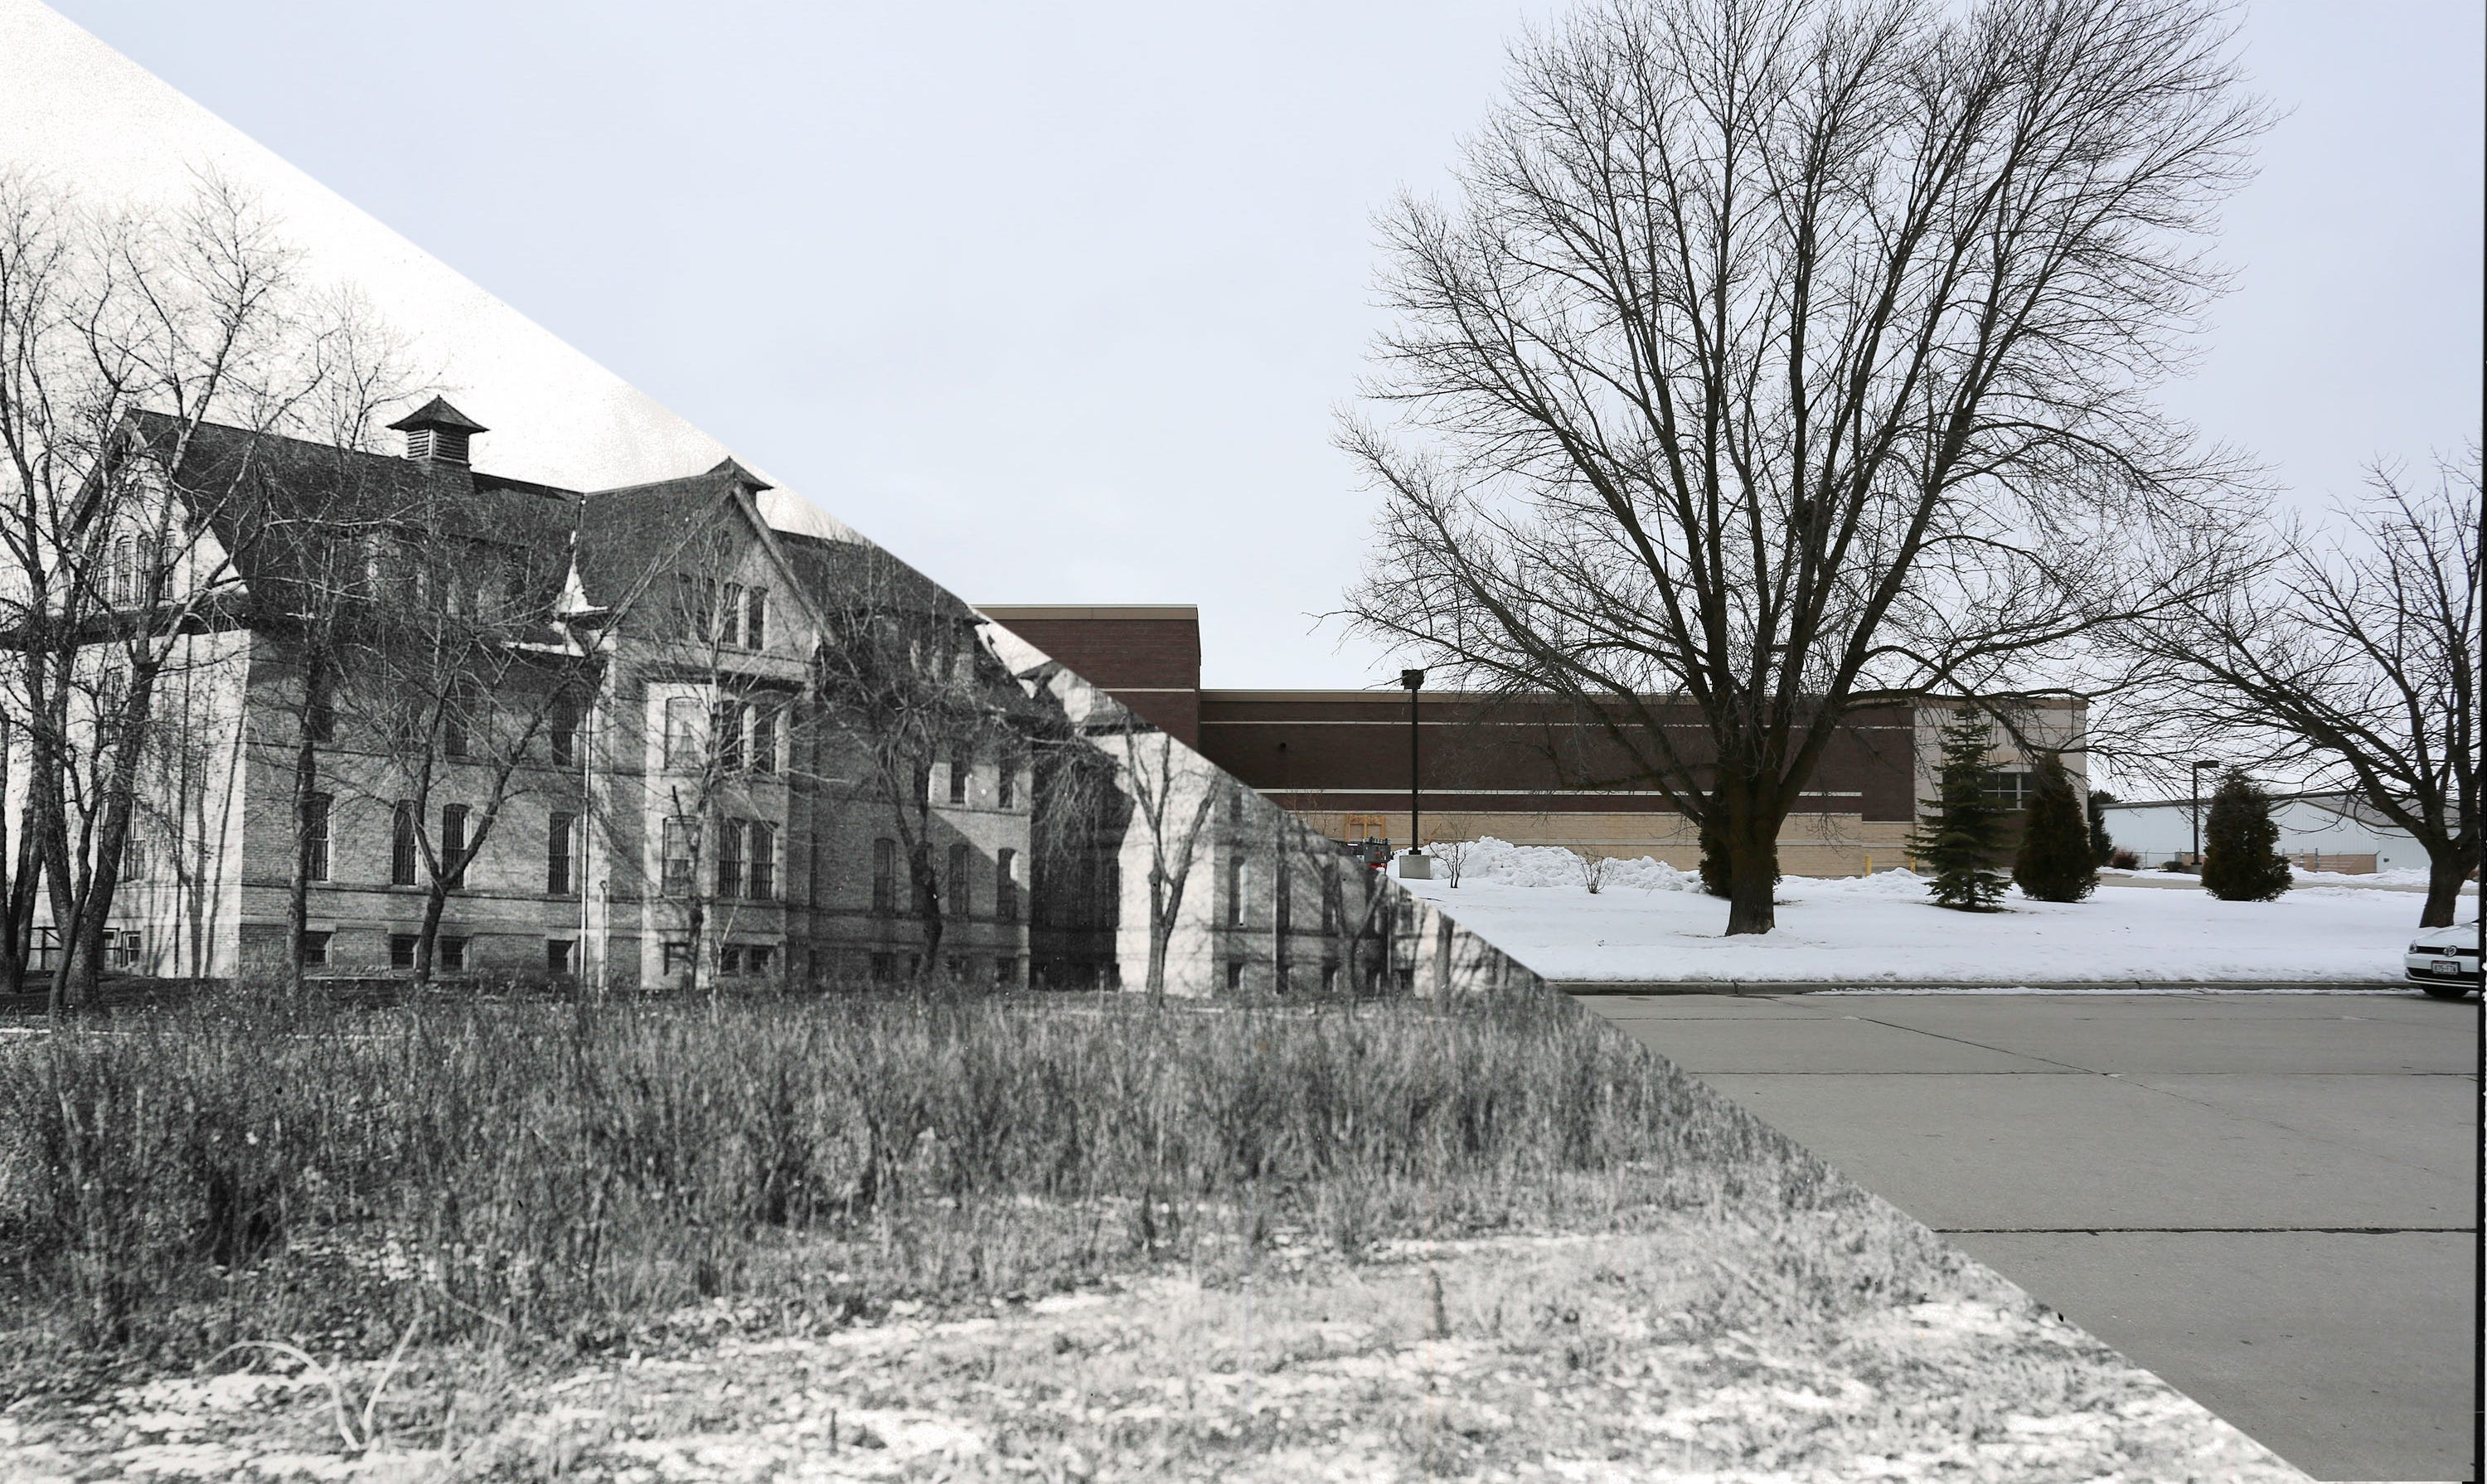 Sheboygan Asylum Could Have Been Where Lakeland University Is Today